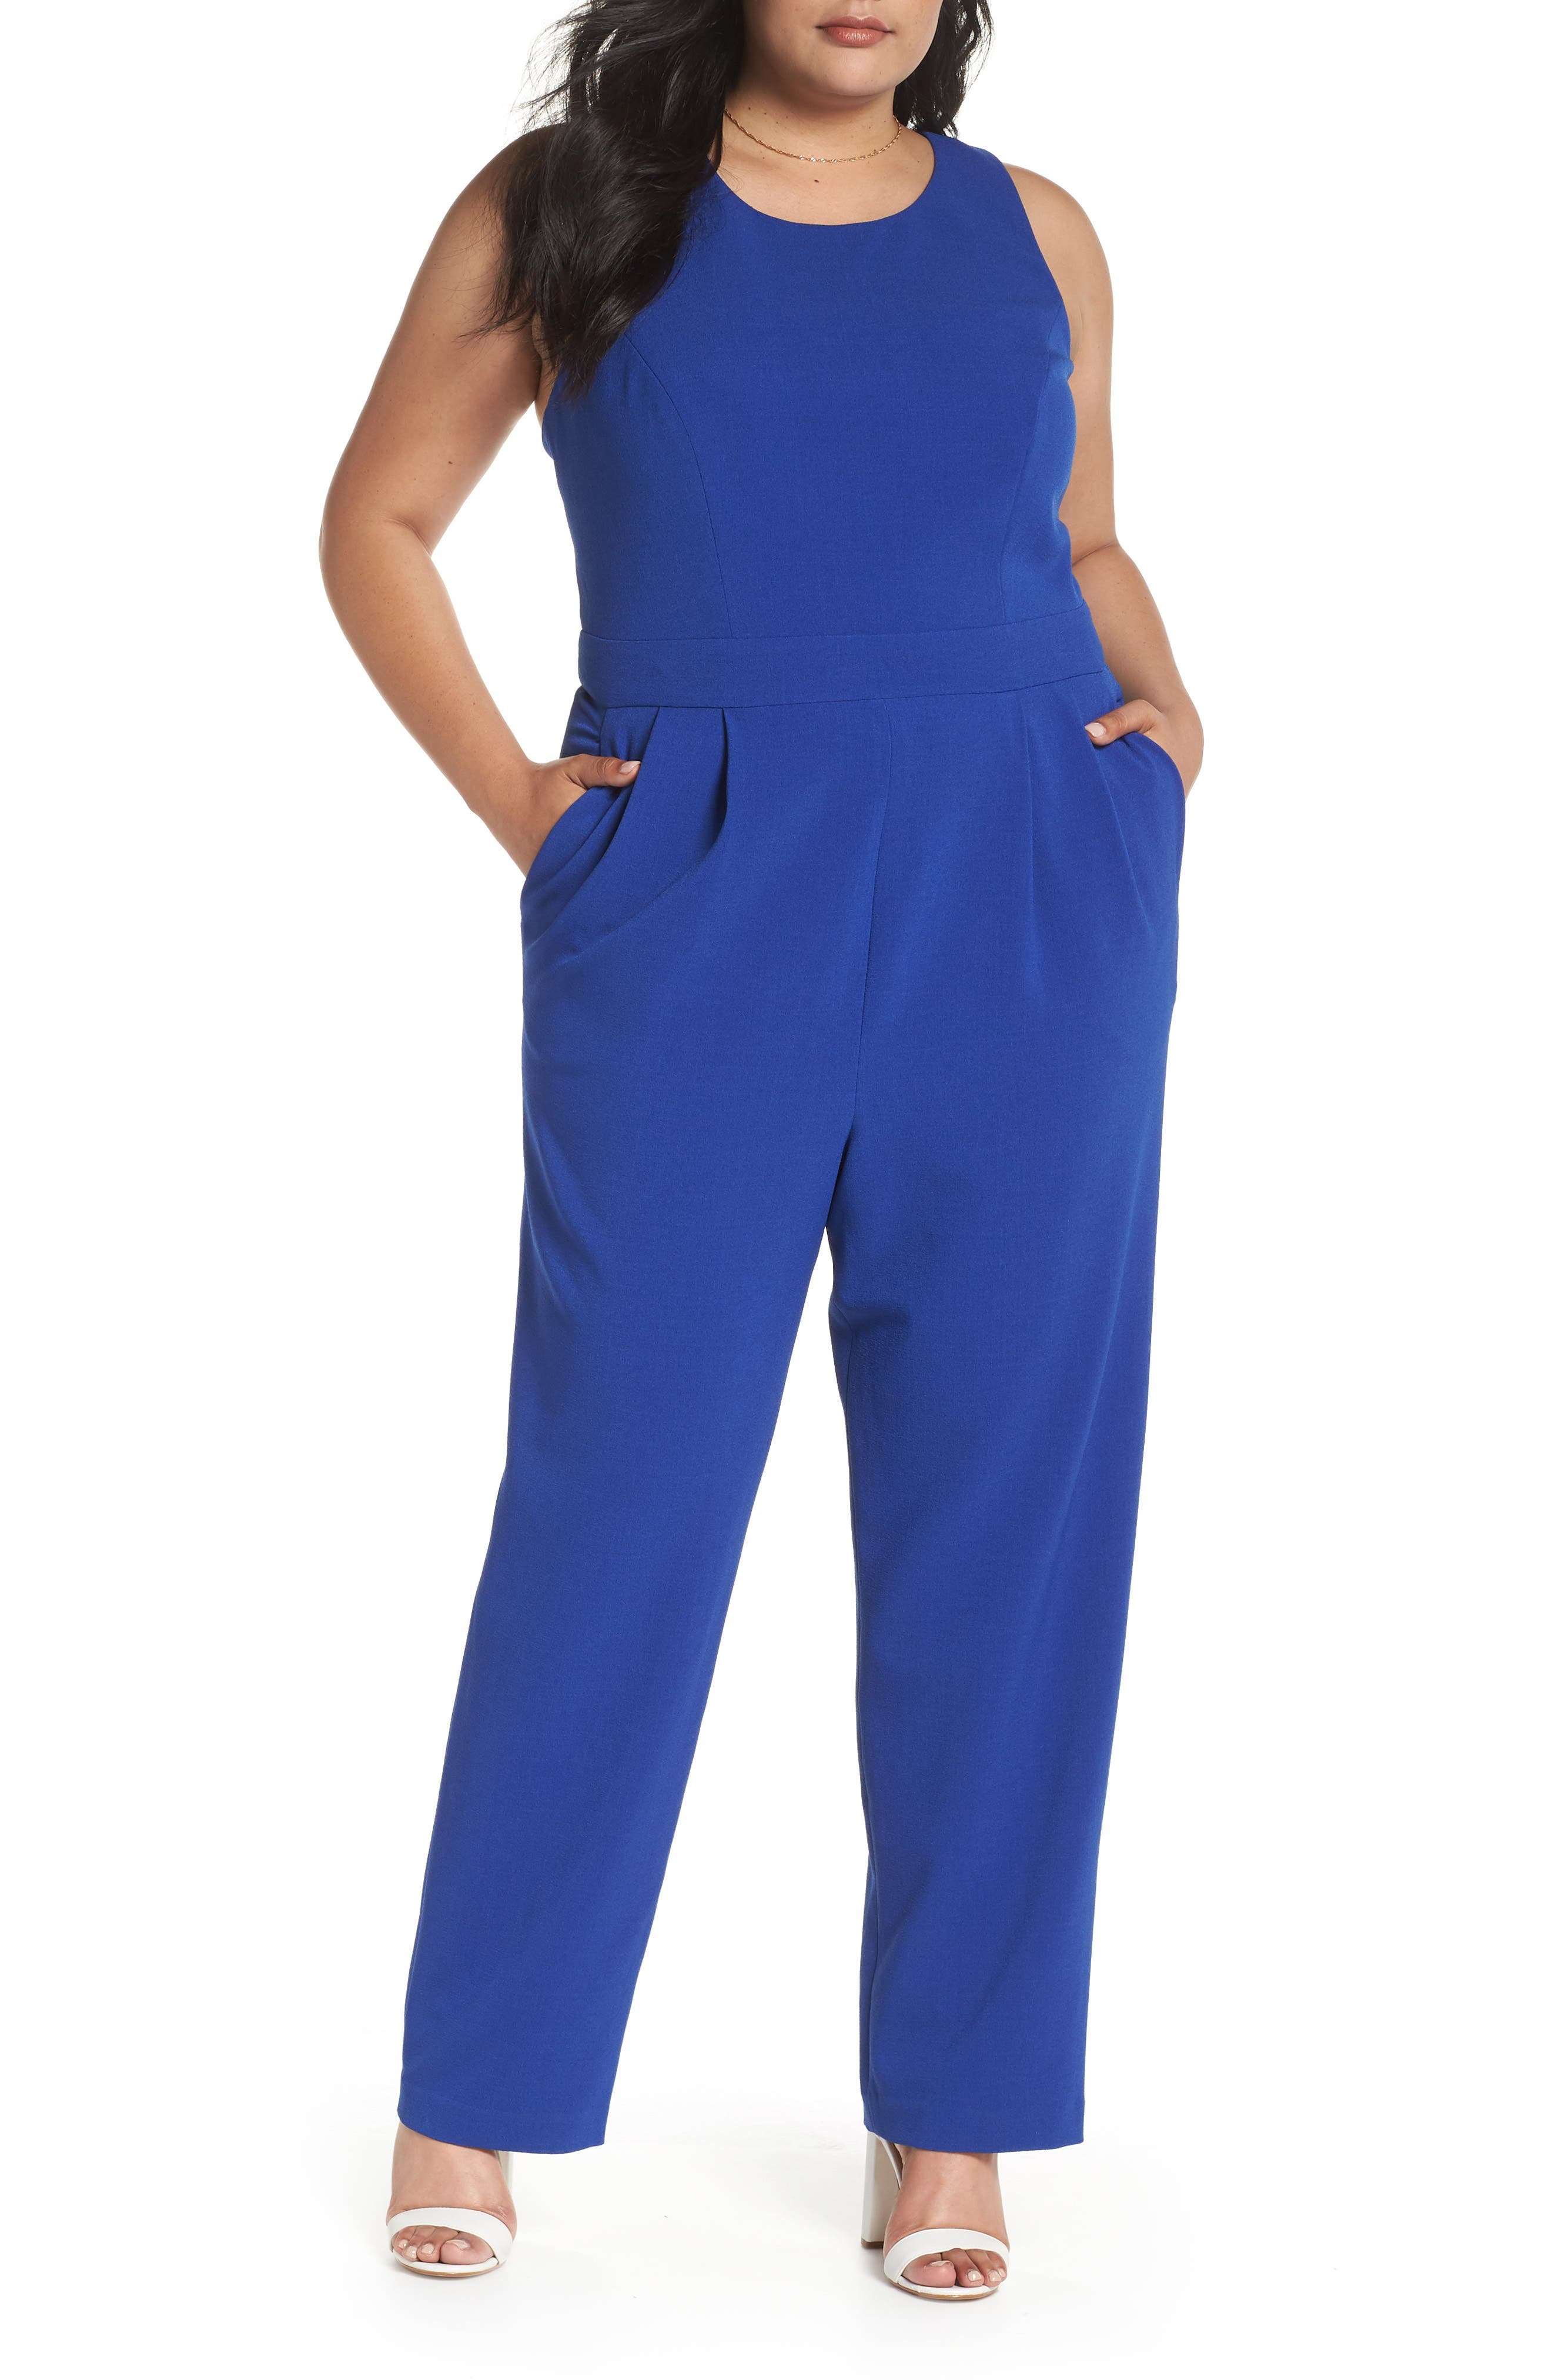 Alternate Image 1 Selected - 1901 Bow Back Jumpsuit